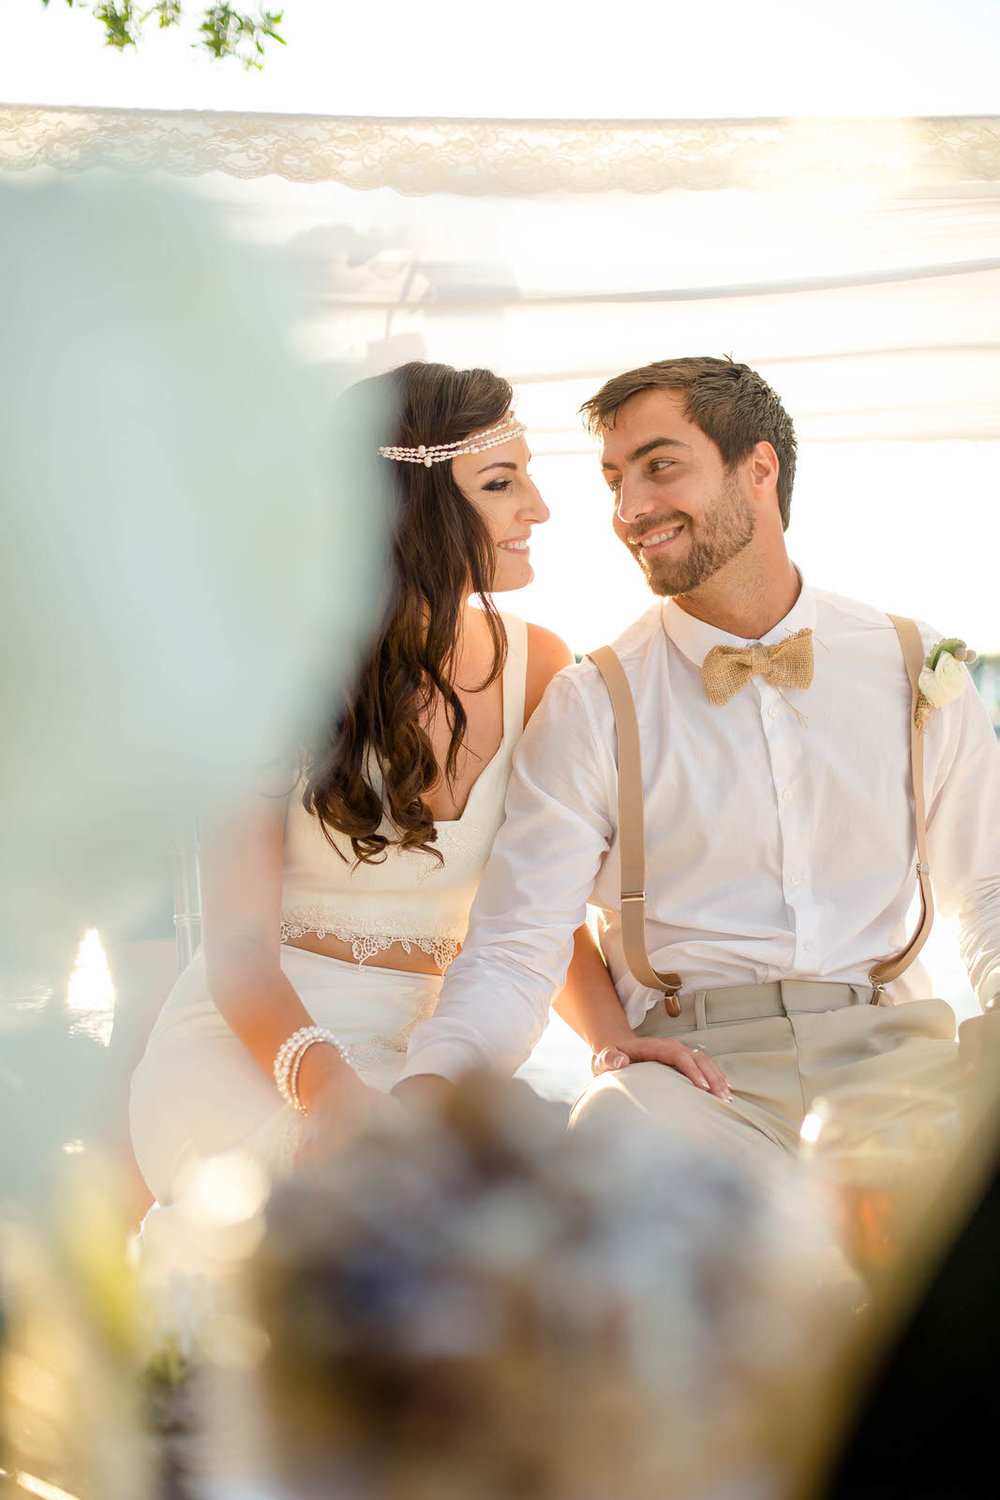 bride_and_groom_moment_tiny_house_photo_persian_wedding.jpg